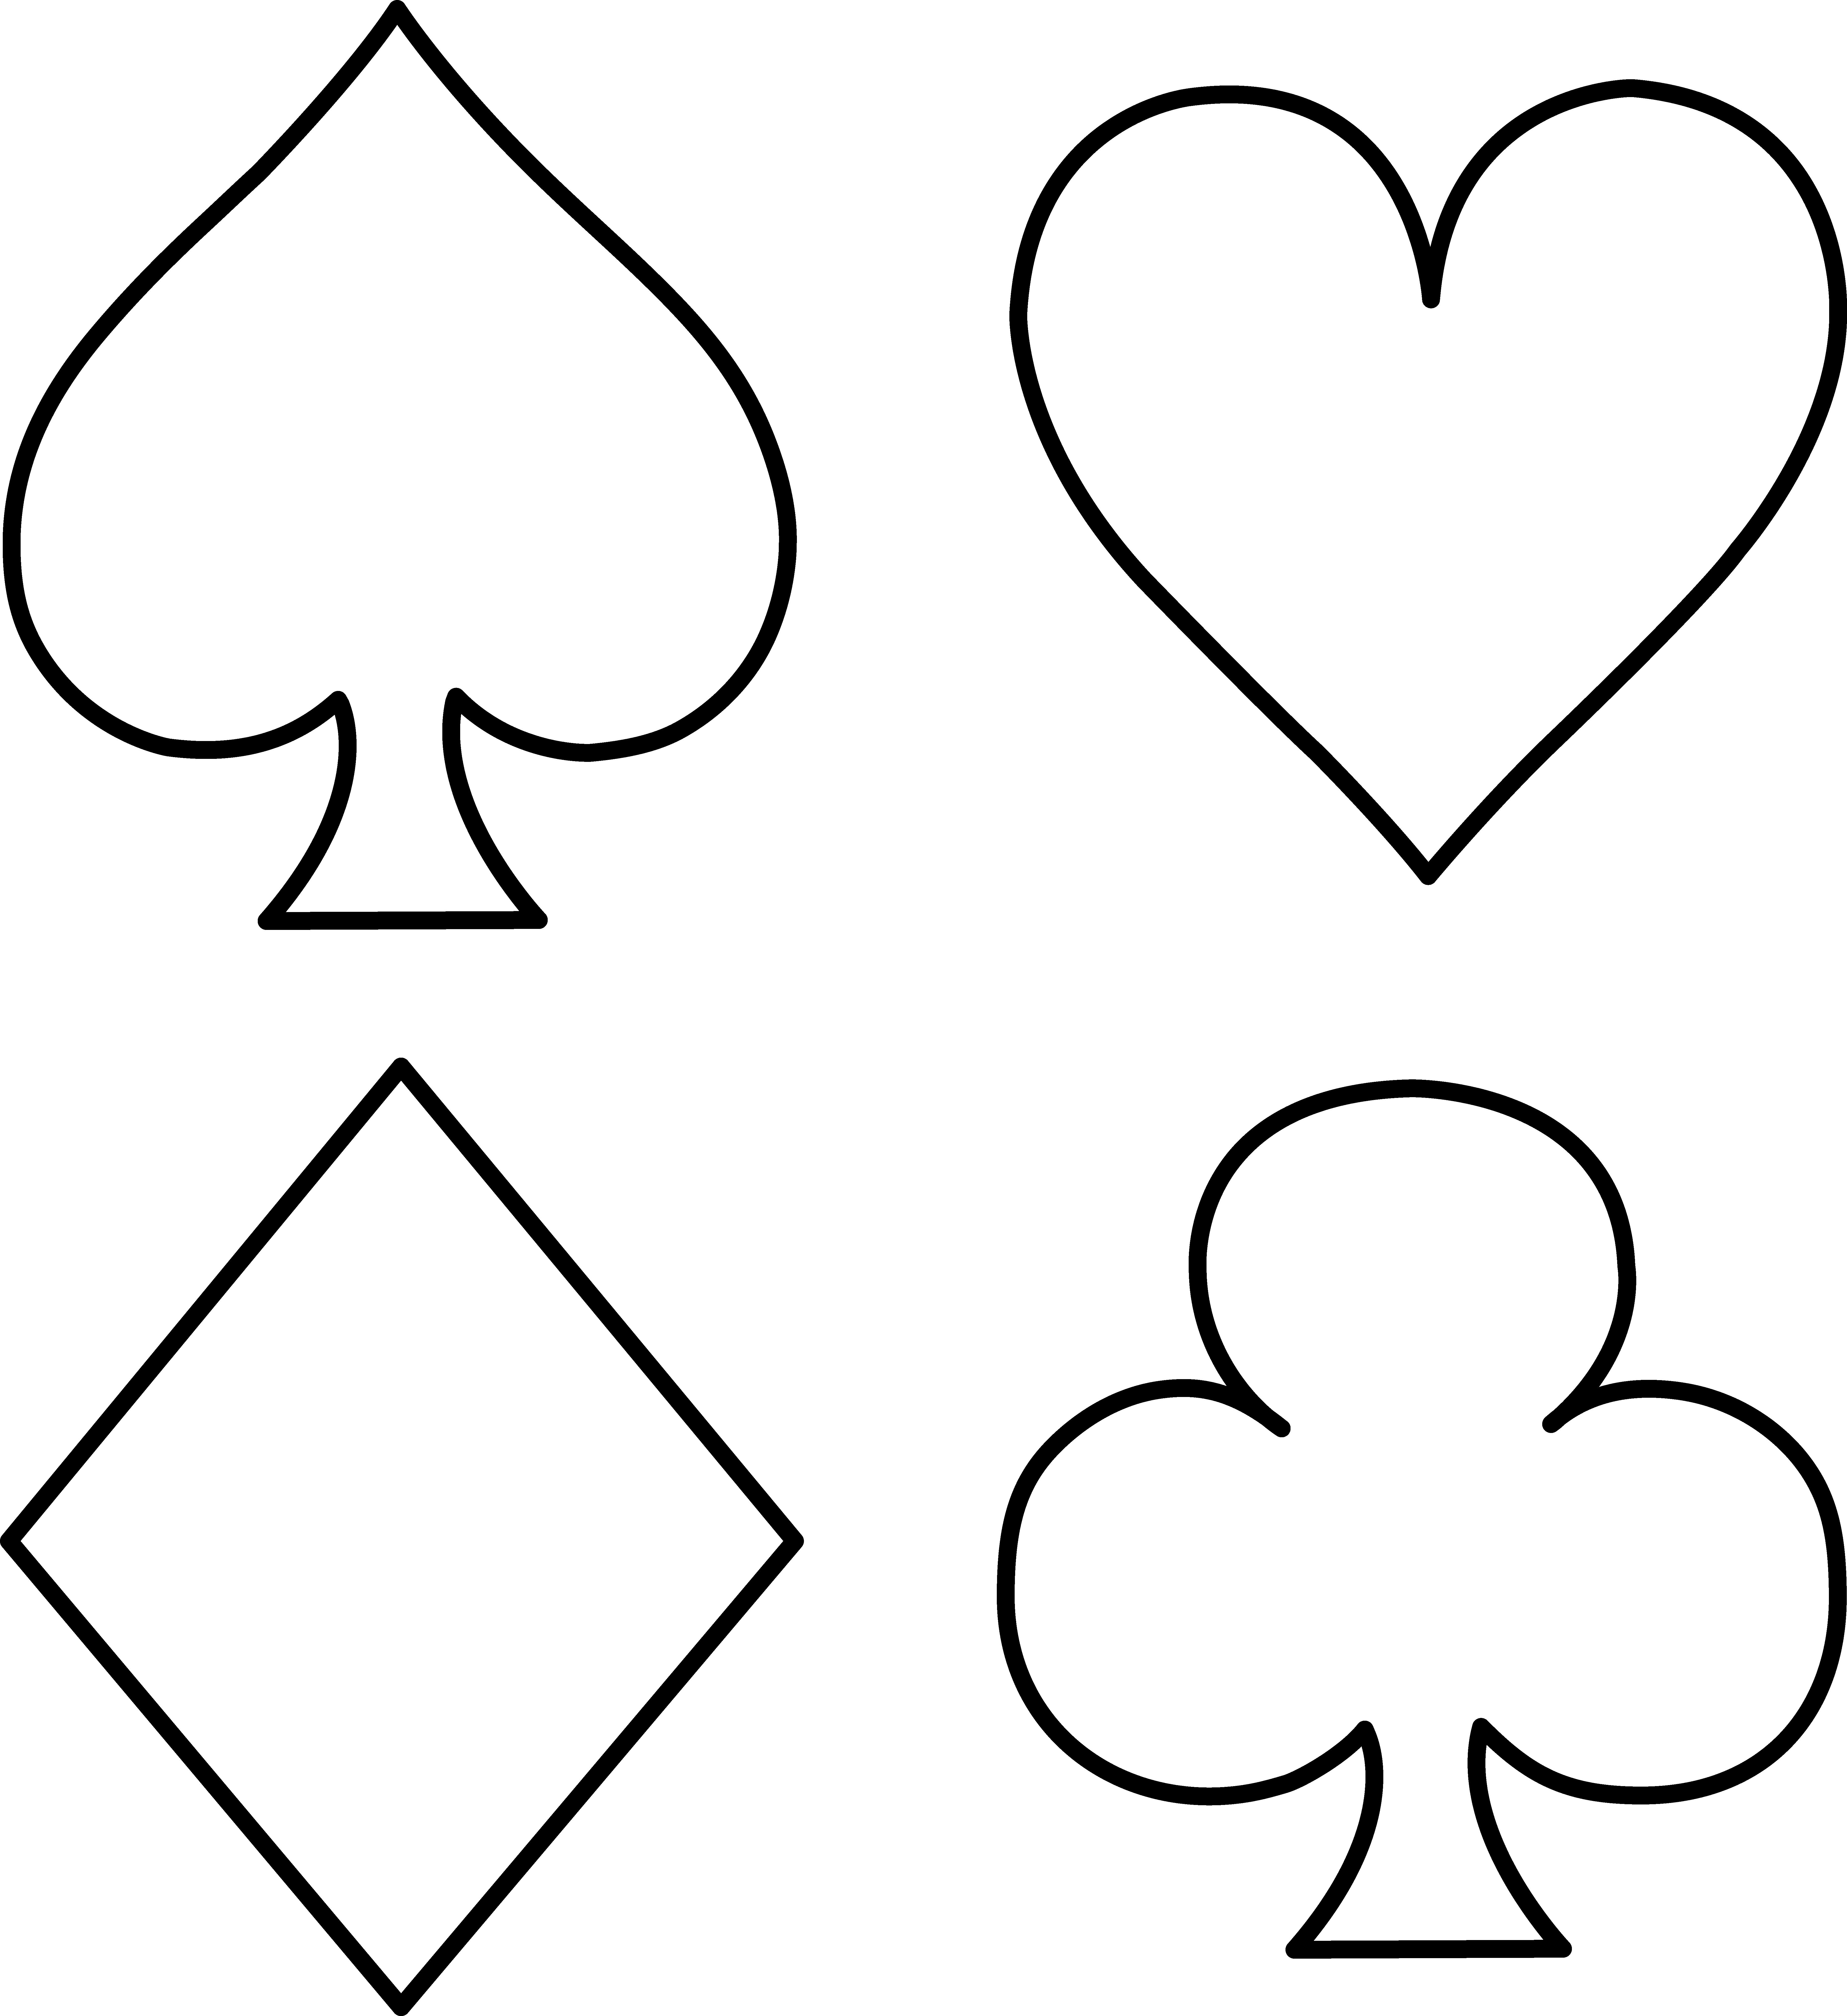 African clipart symbol. Free playing card images